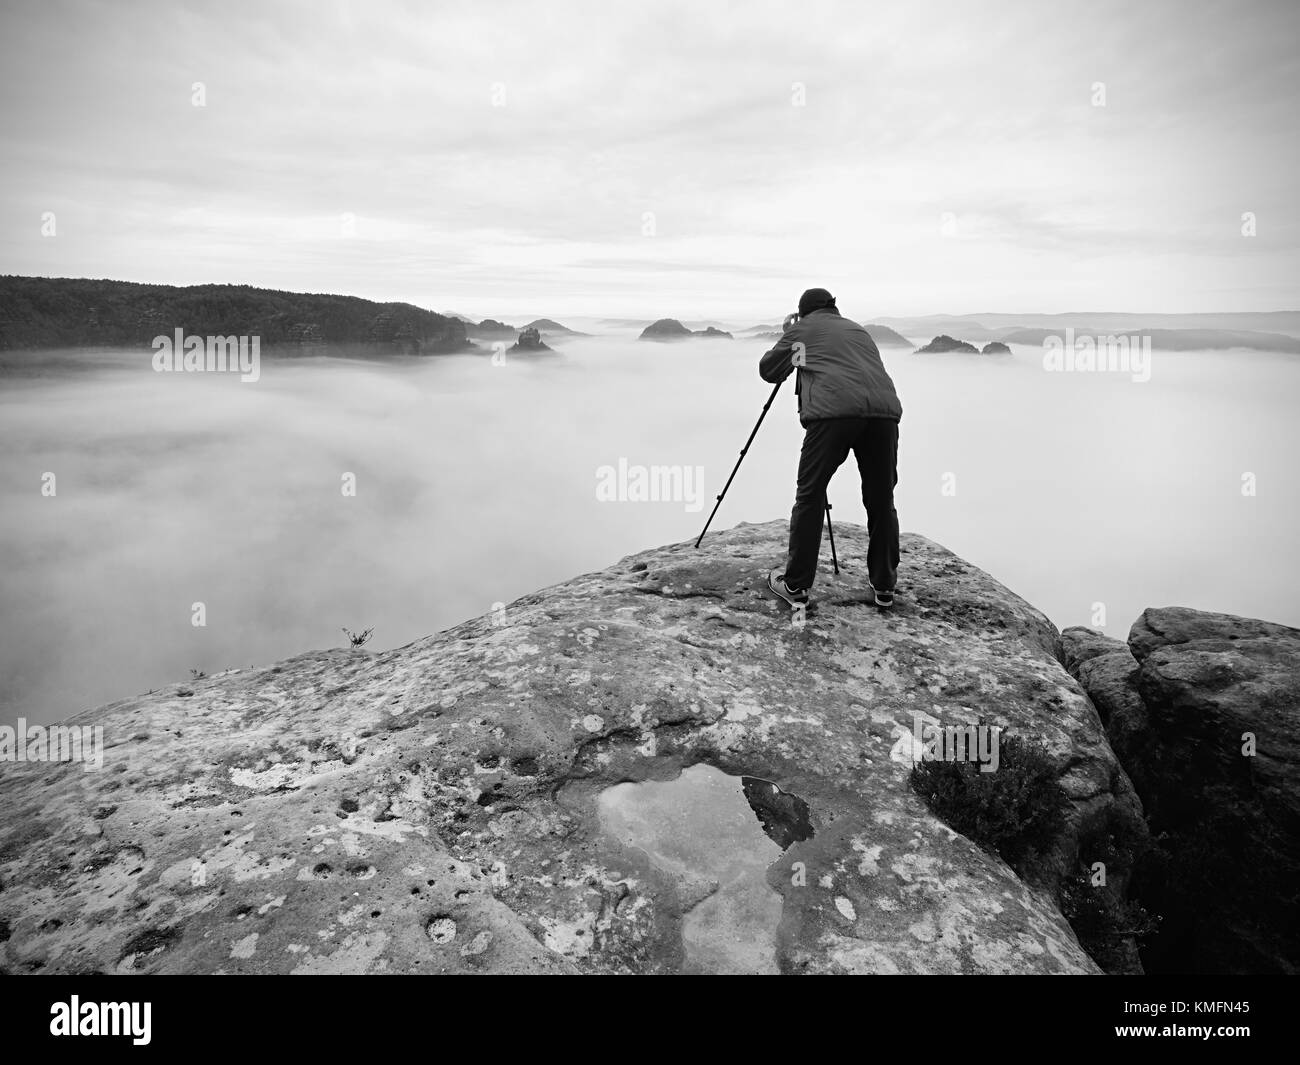 Photo artist in work. Photographer in rocky mountains. Traveller takes photos of dreamy majestic landscape, sunset - Stock Image